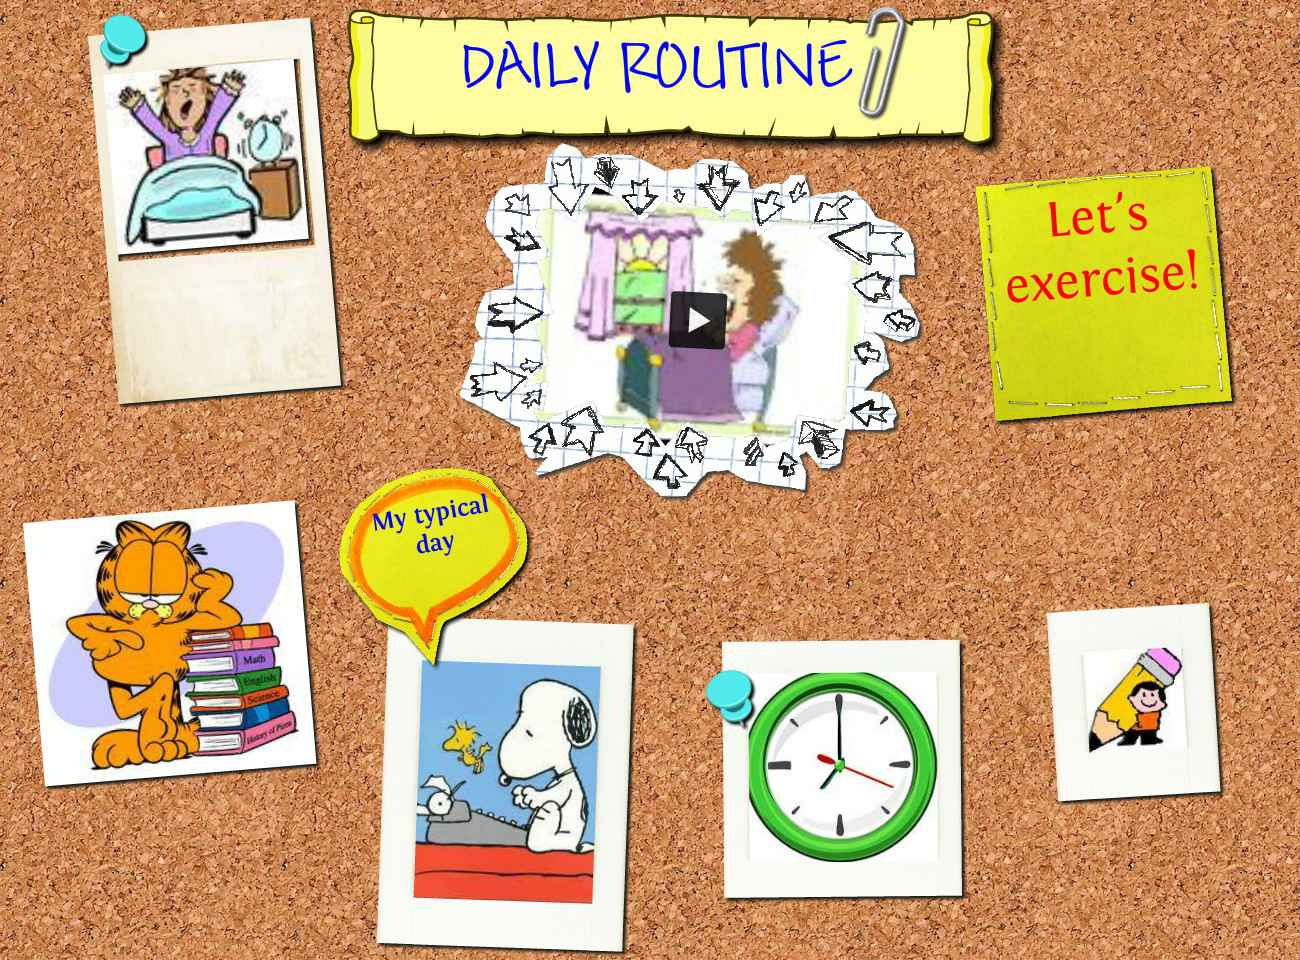 011 Daily Routine Source Essay Unique On Of Housewife June 21 My Life Full